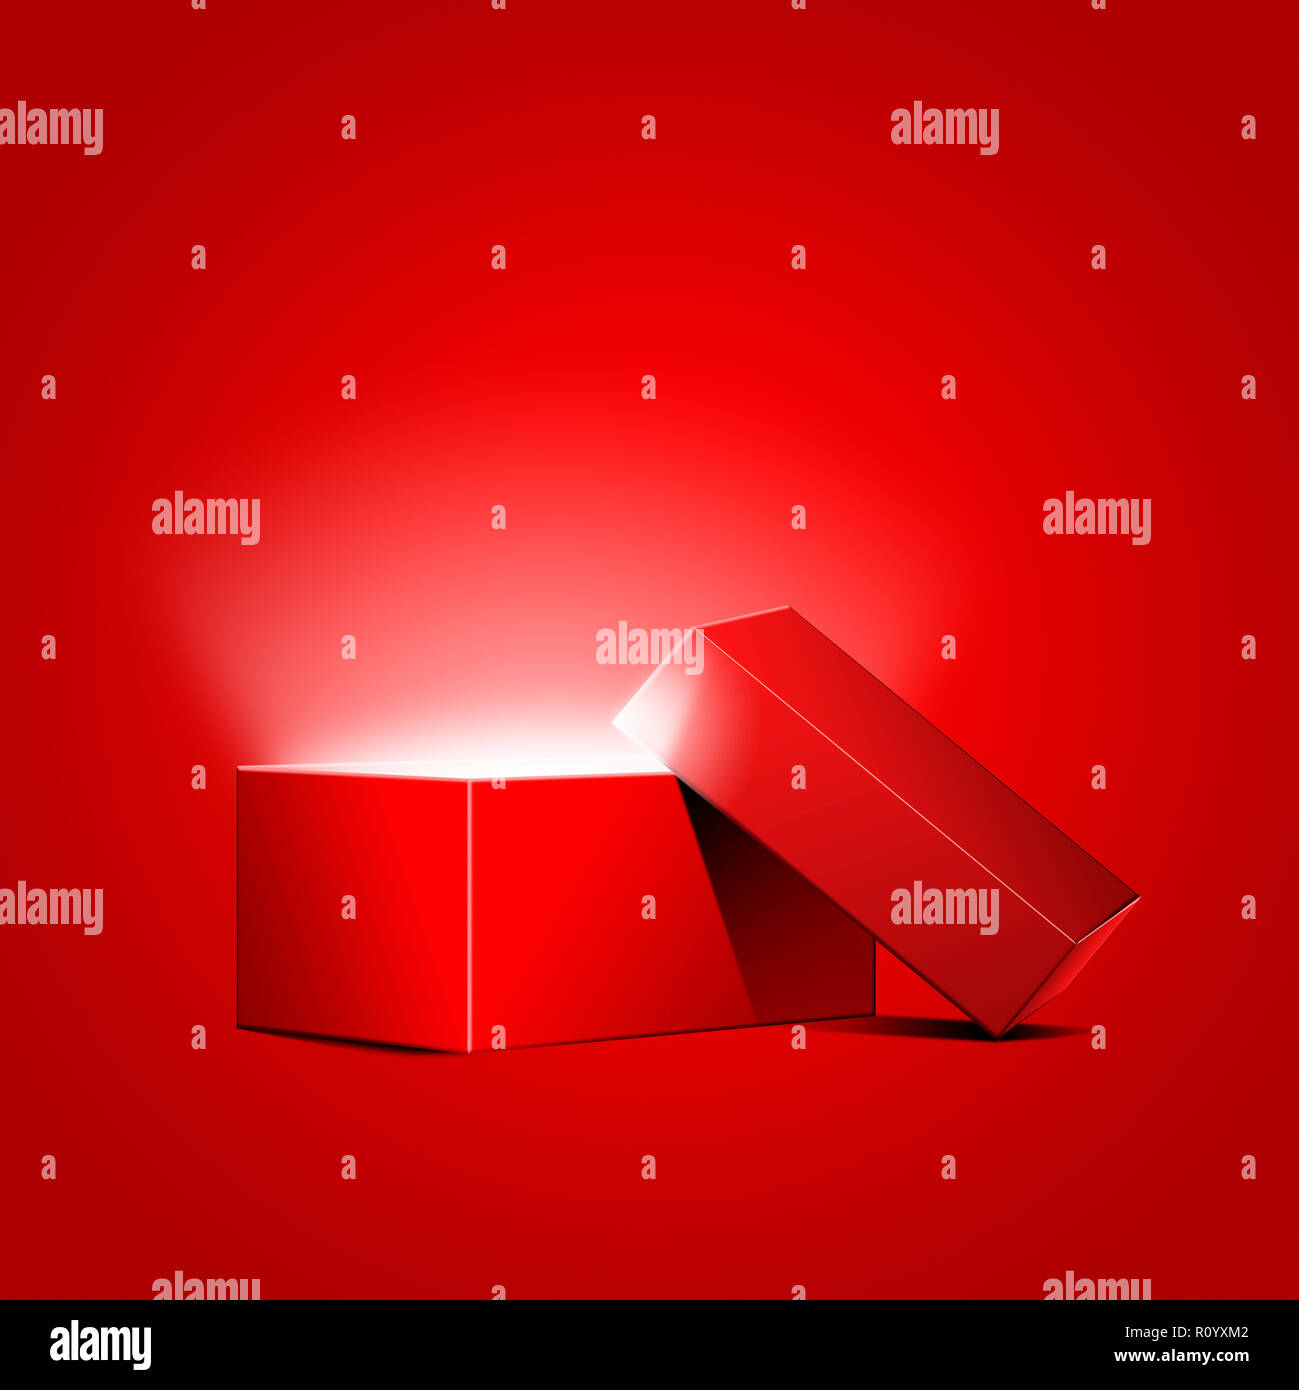 Glowing light radiating from opened red gift box against red background - Stock Image